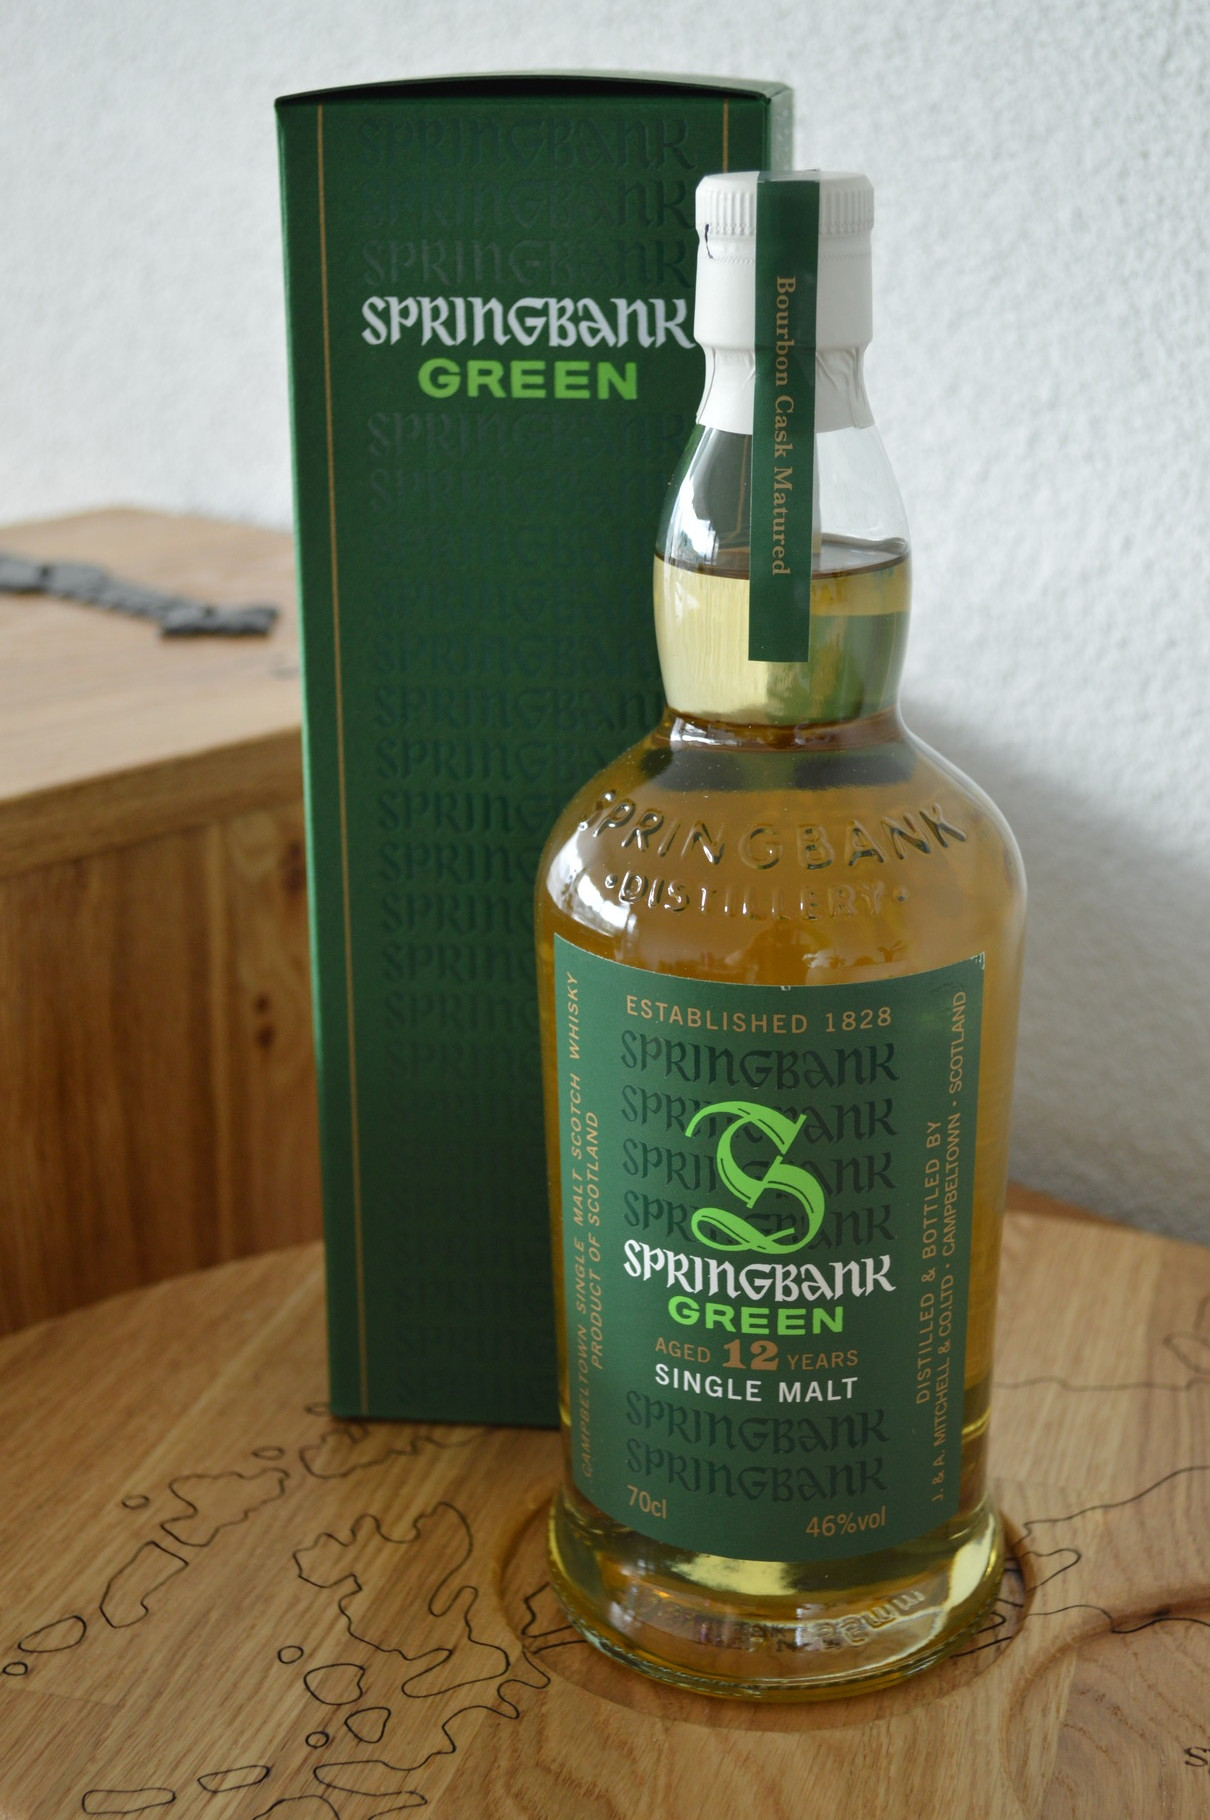 CAMPBELTOWN - Springbank* - Age: 12 years - Bottler: Original - 70cl - 46% - Green